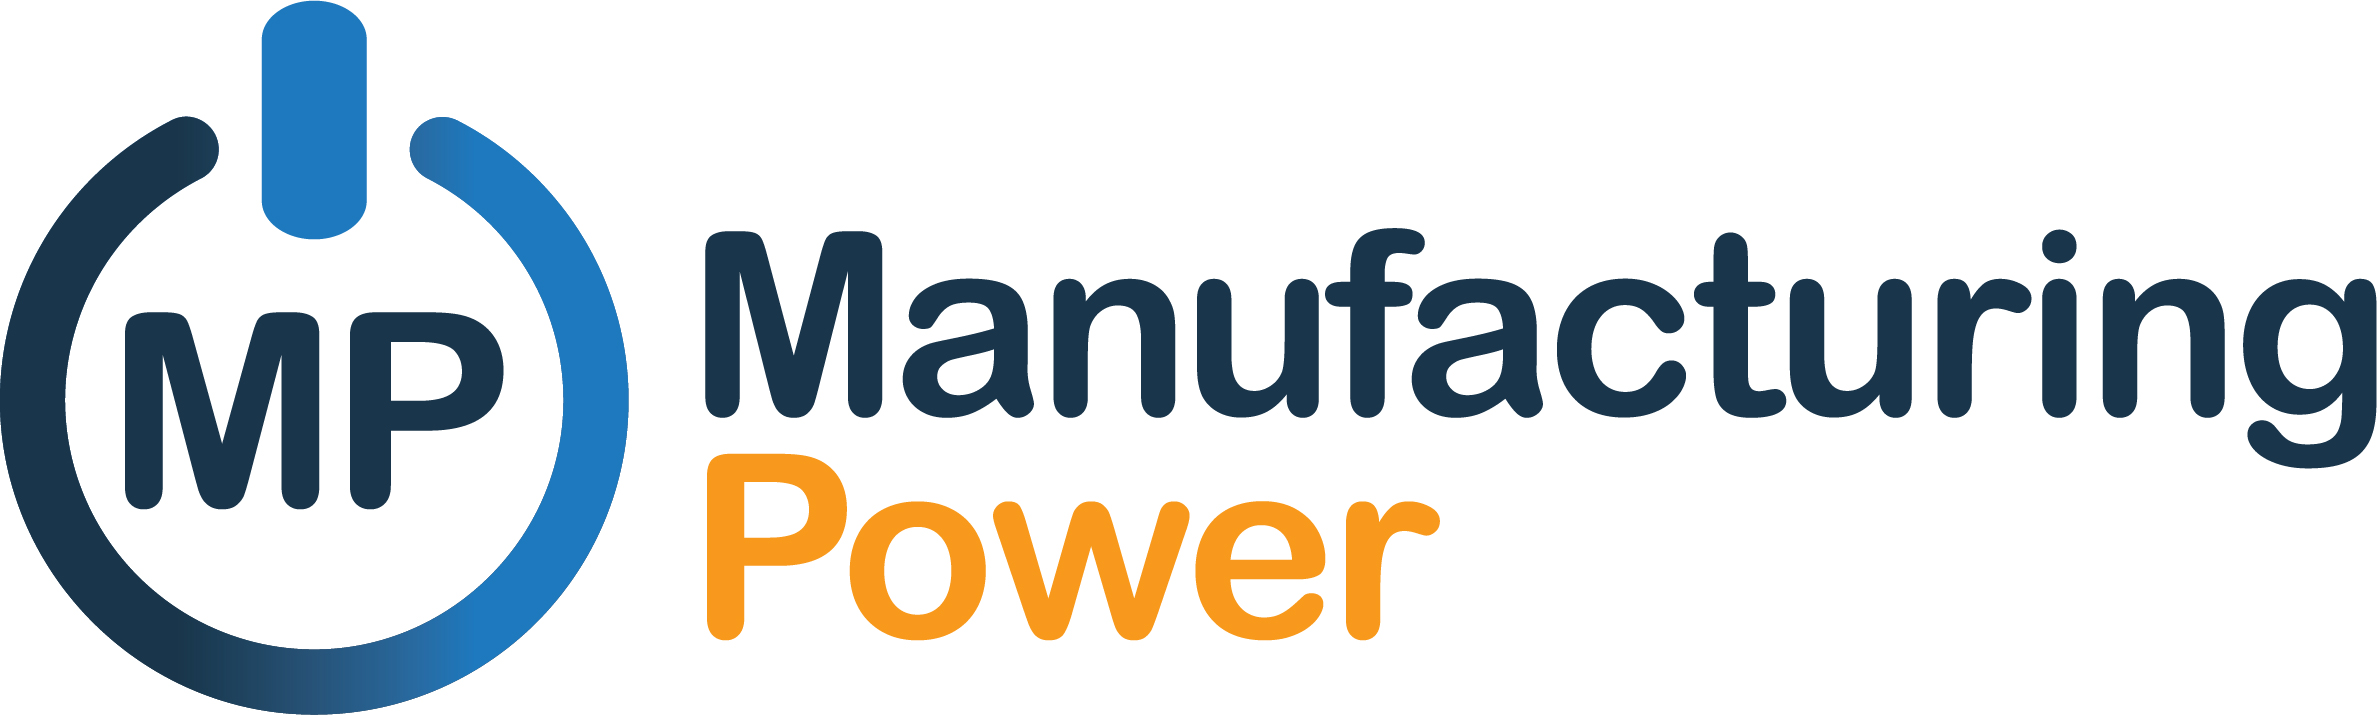 ManufacturingPower CEO Mike Franz Talks How Small Manufacturers Can Survive with Real Time Price Comparisons